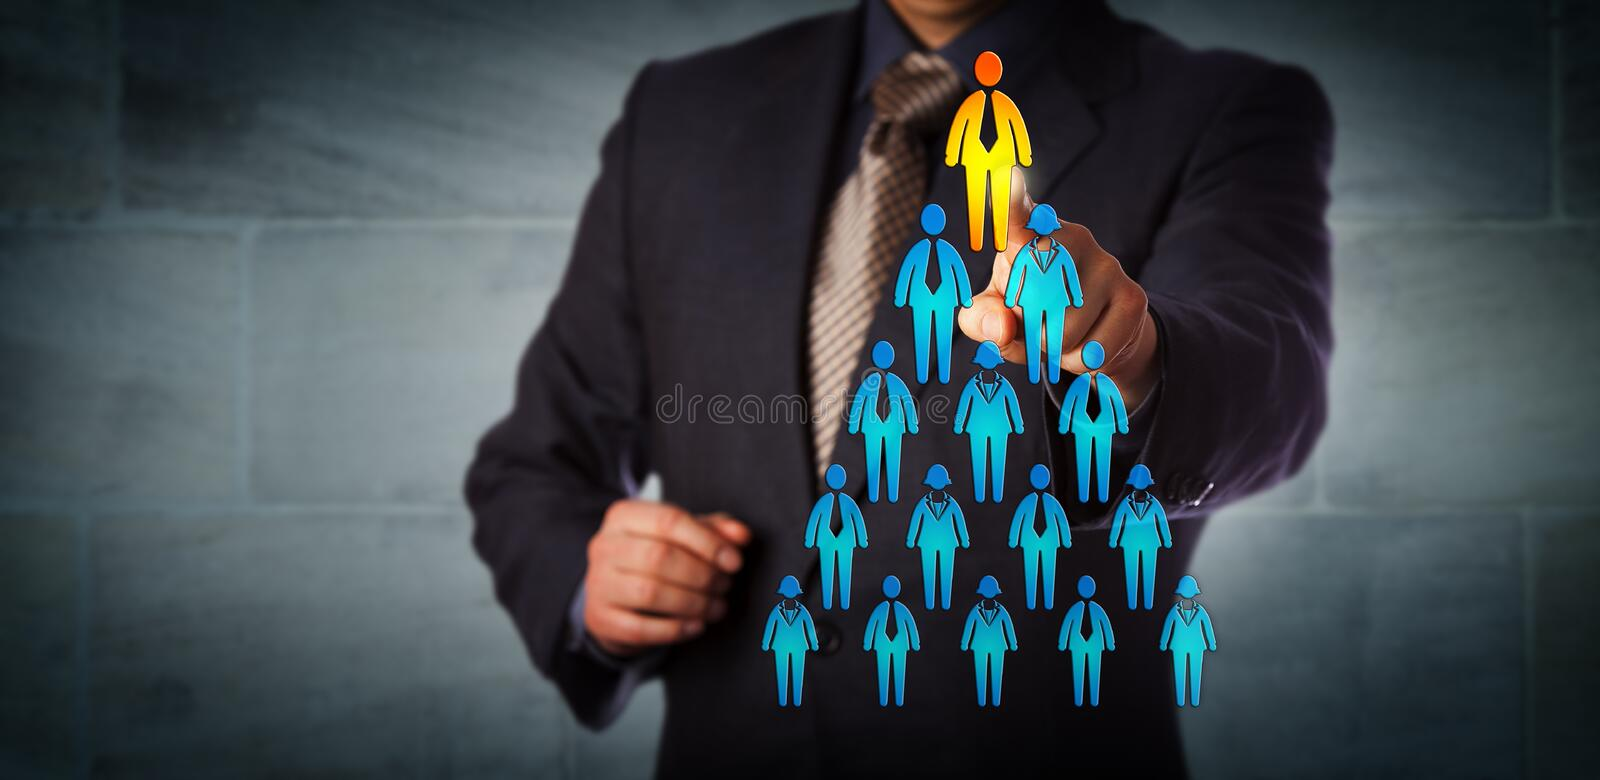 Recruiter Selecting Man Atop Corporate Hierarchy. Blue chip recruitment manager selecting the employee icon atop a pyramid structure. Business concept for talent royalty free stock image